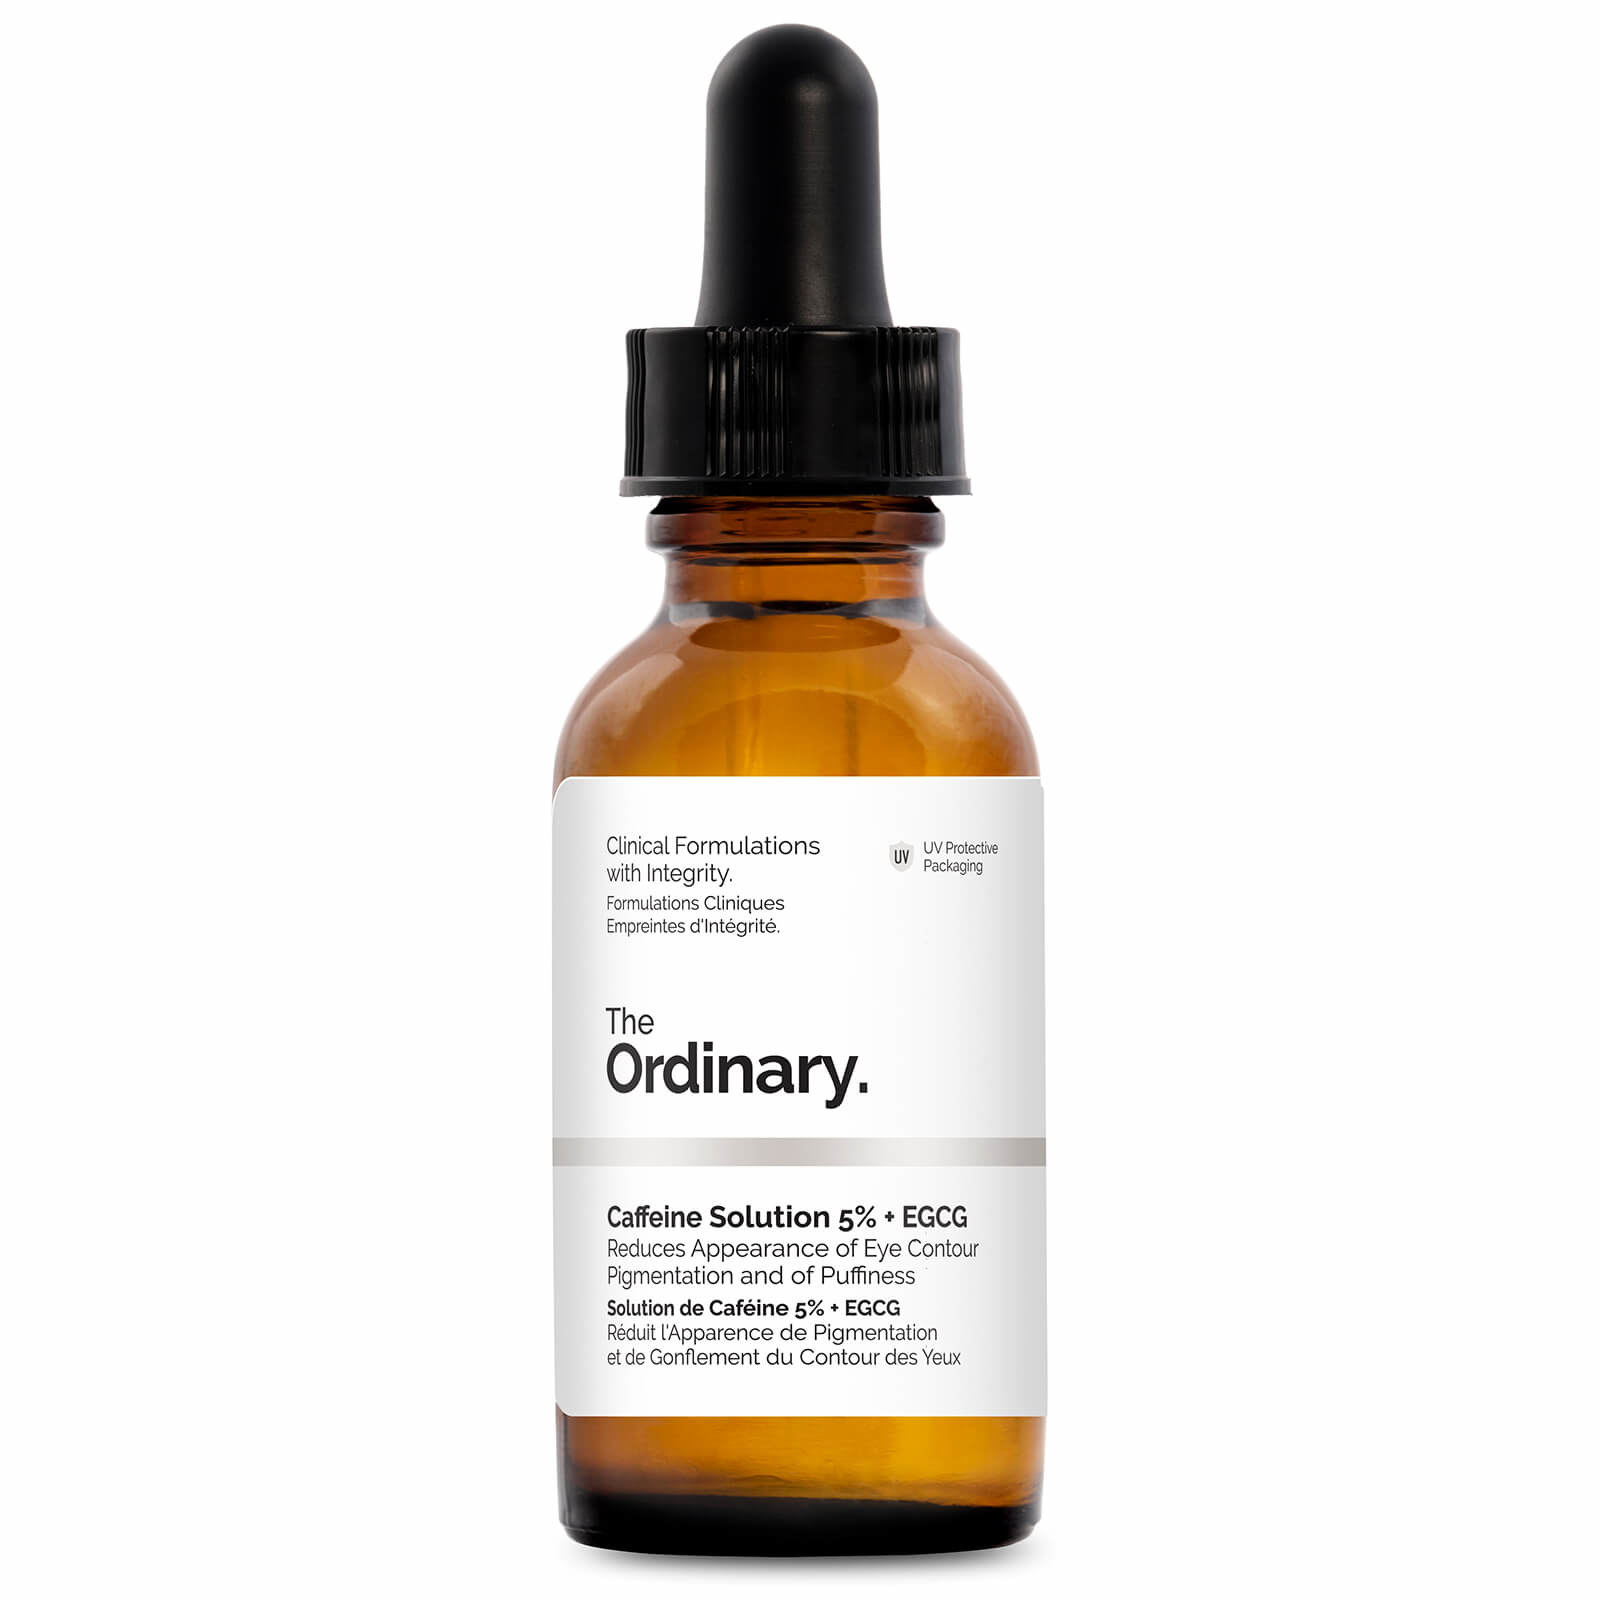 Brown dropper bottle of The Ordinary's Caffeine Solution 5% + EGCG